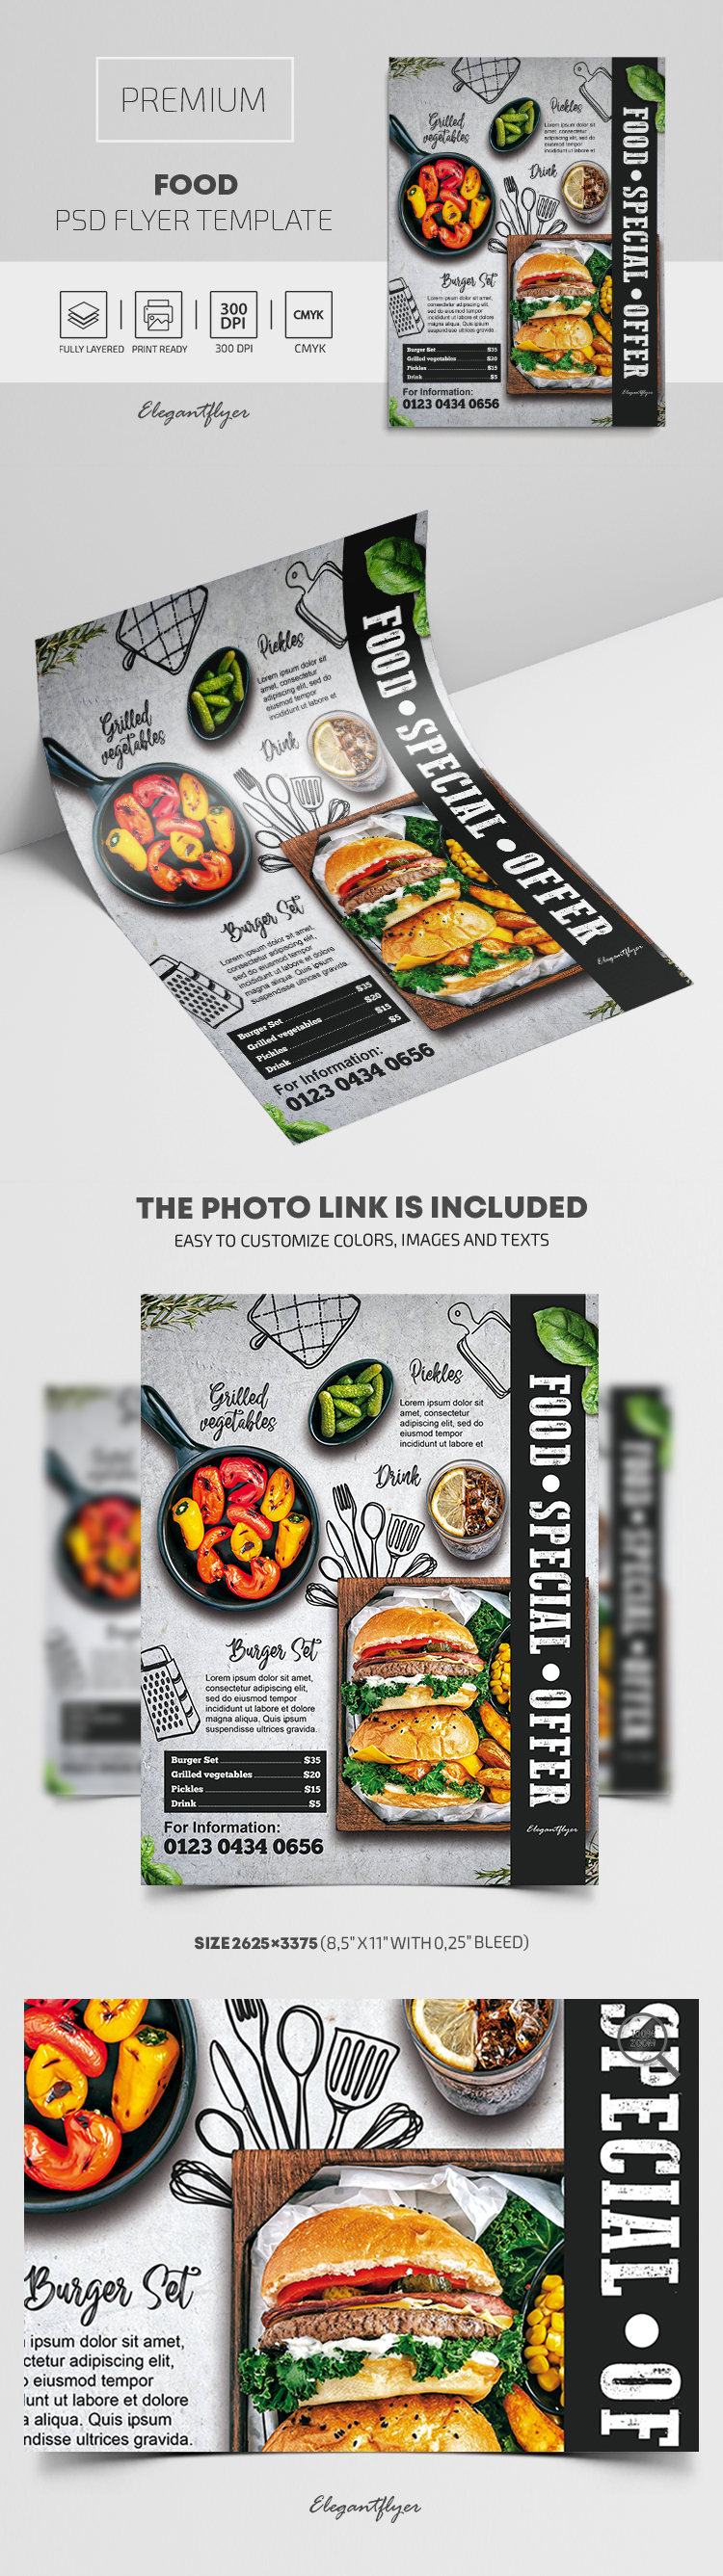 Food – Premium PSD Flyer Template